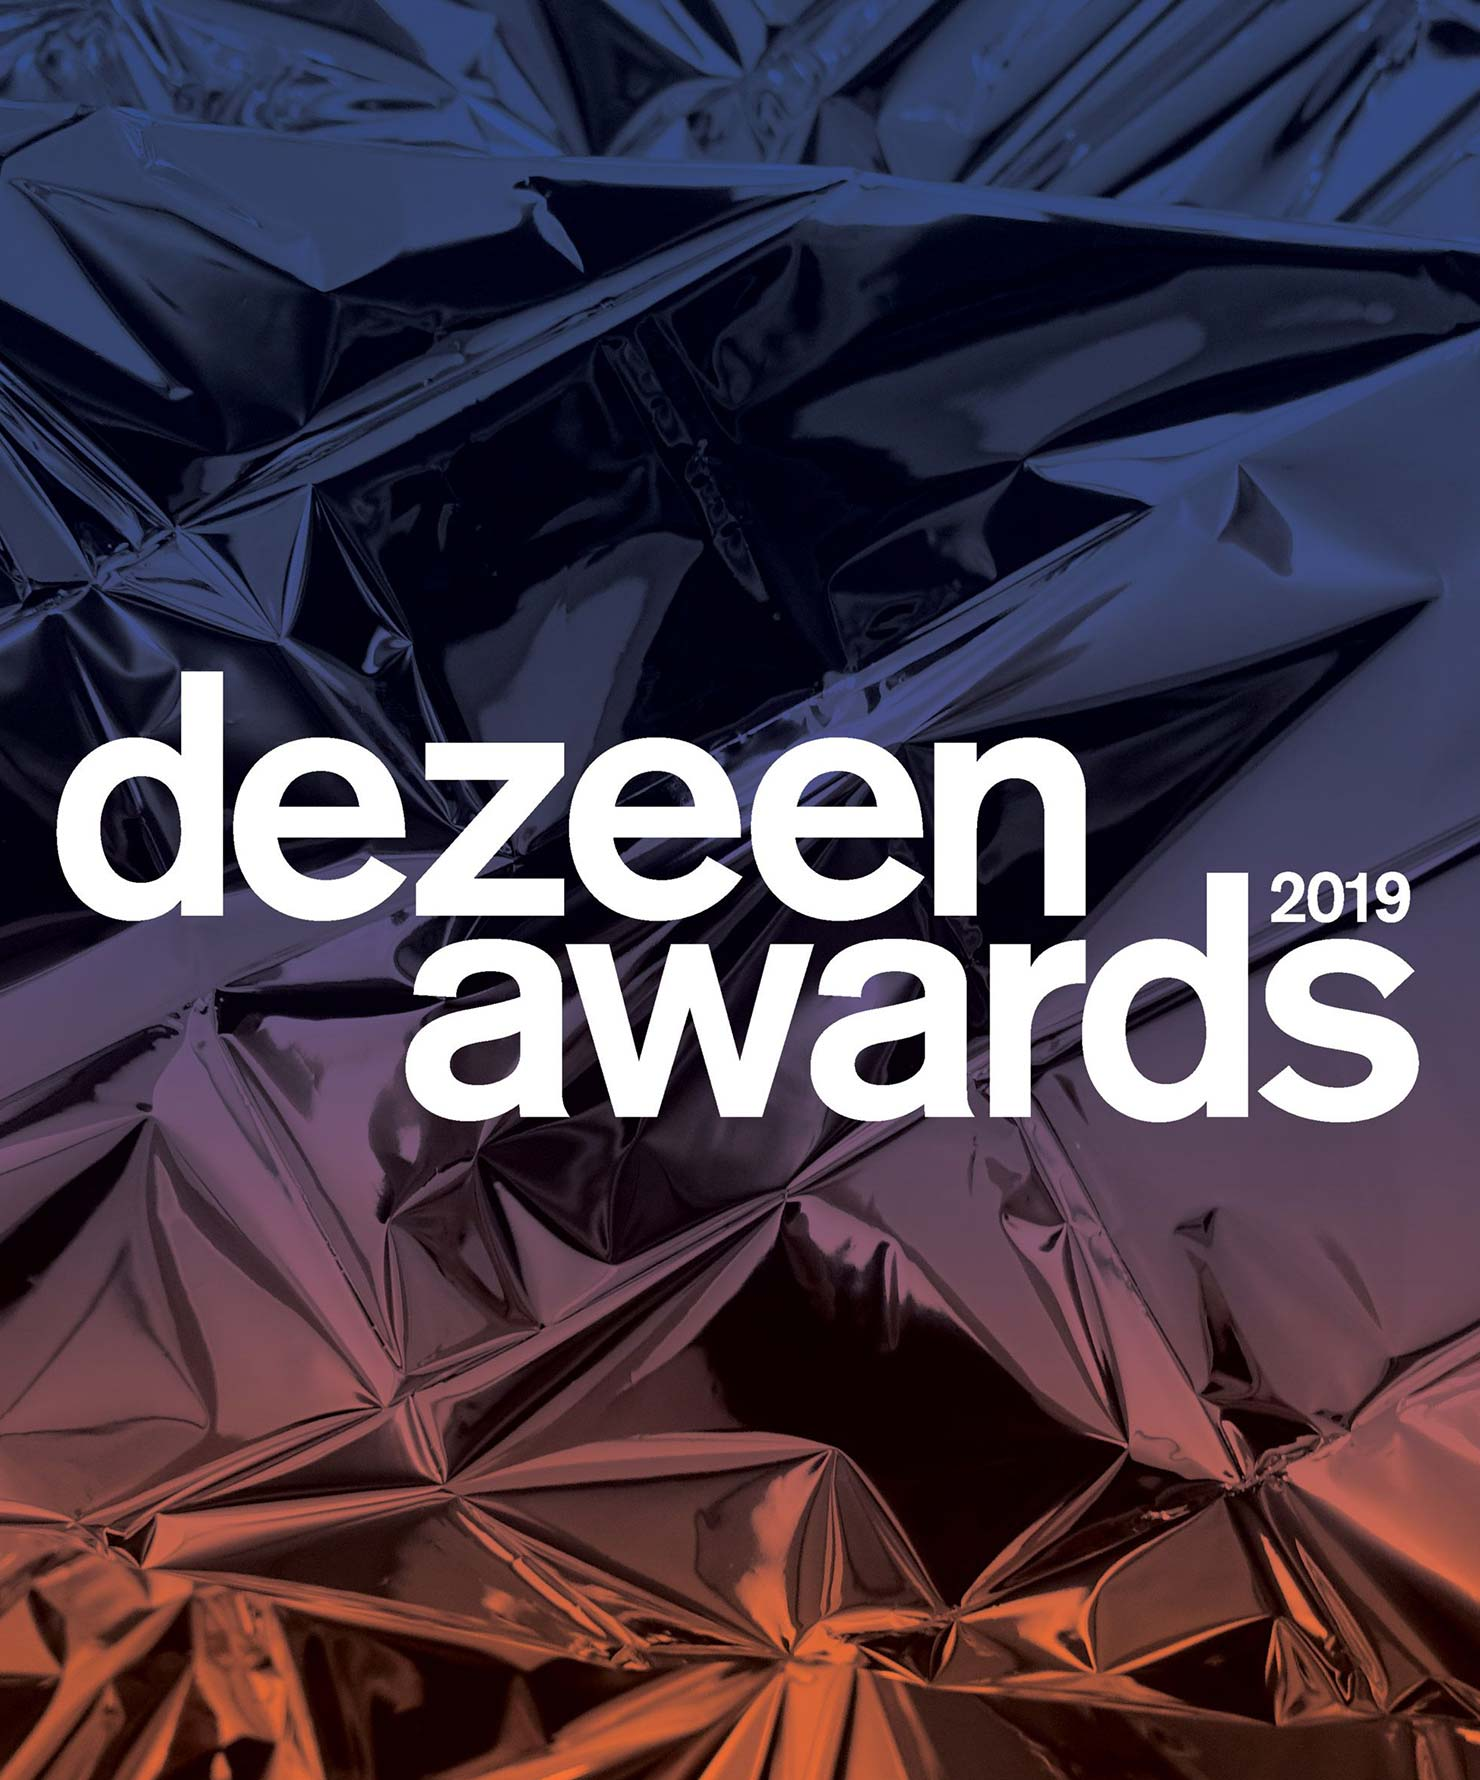 Less Dezeen Design Award Best Sustainable Design